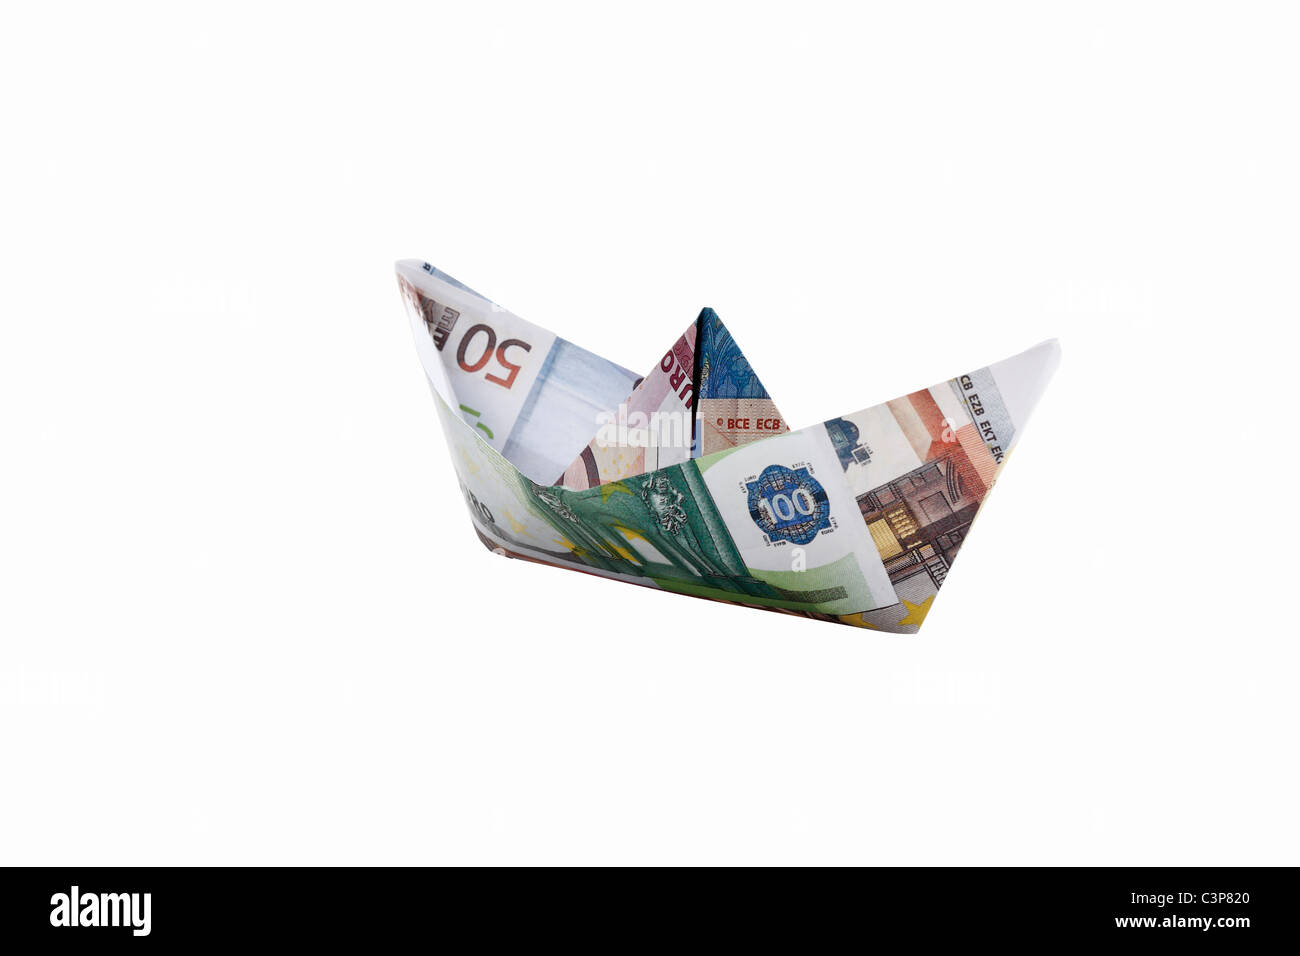 Origami paper boat of euro notes on white background - Stock Image